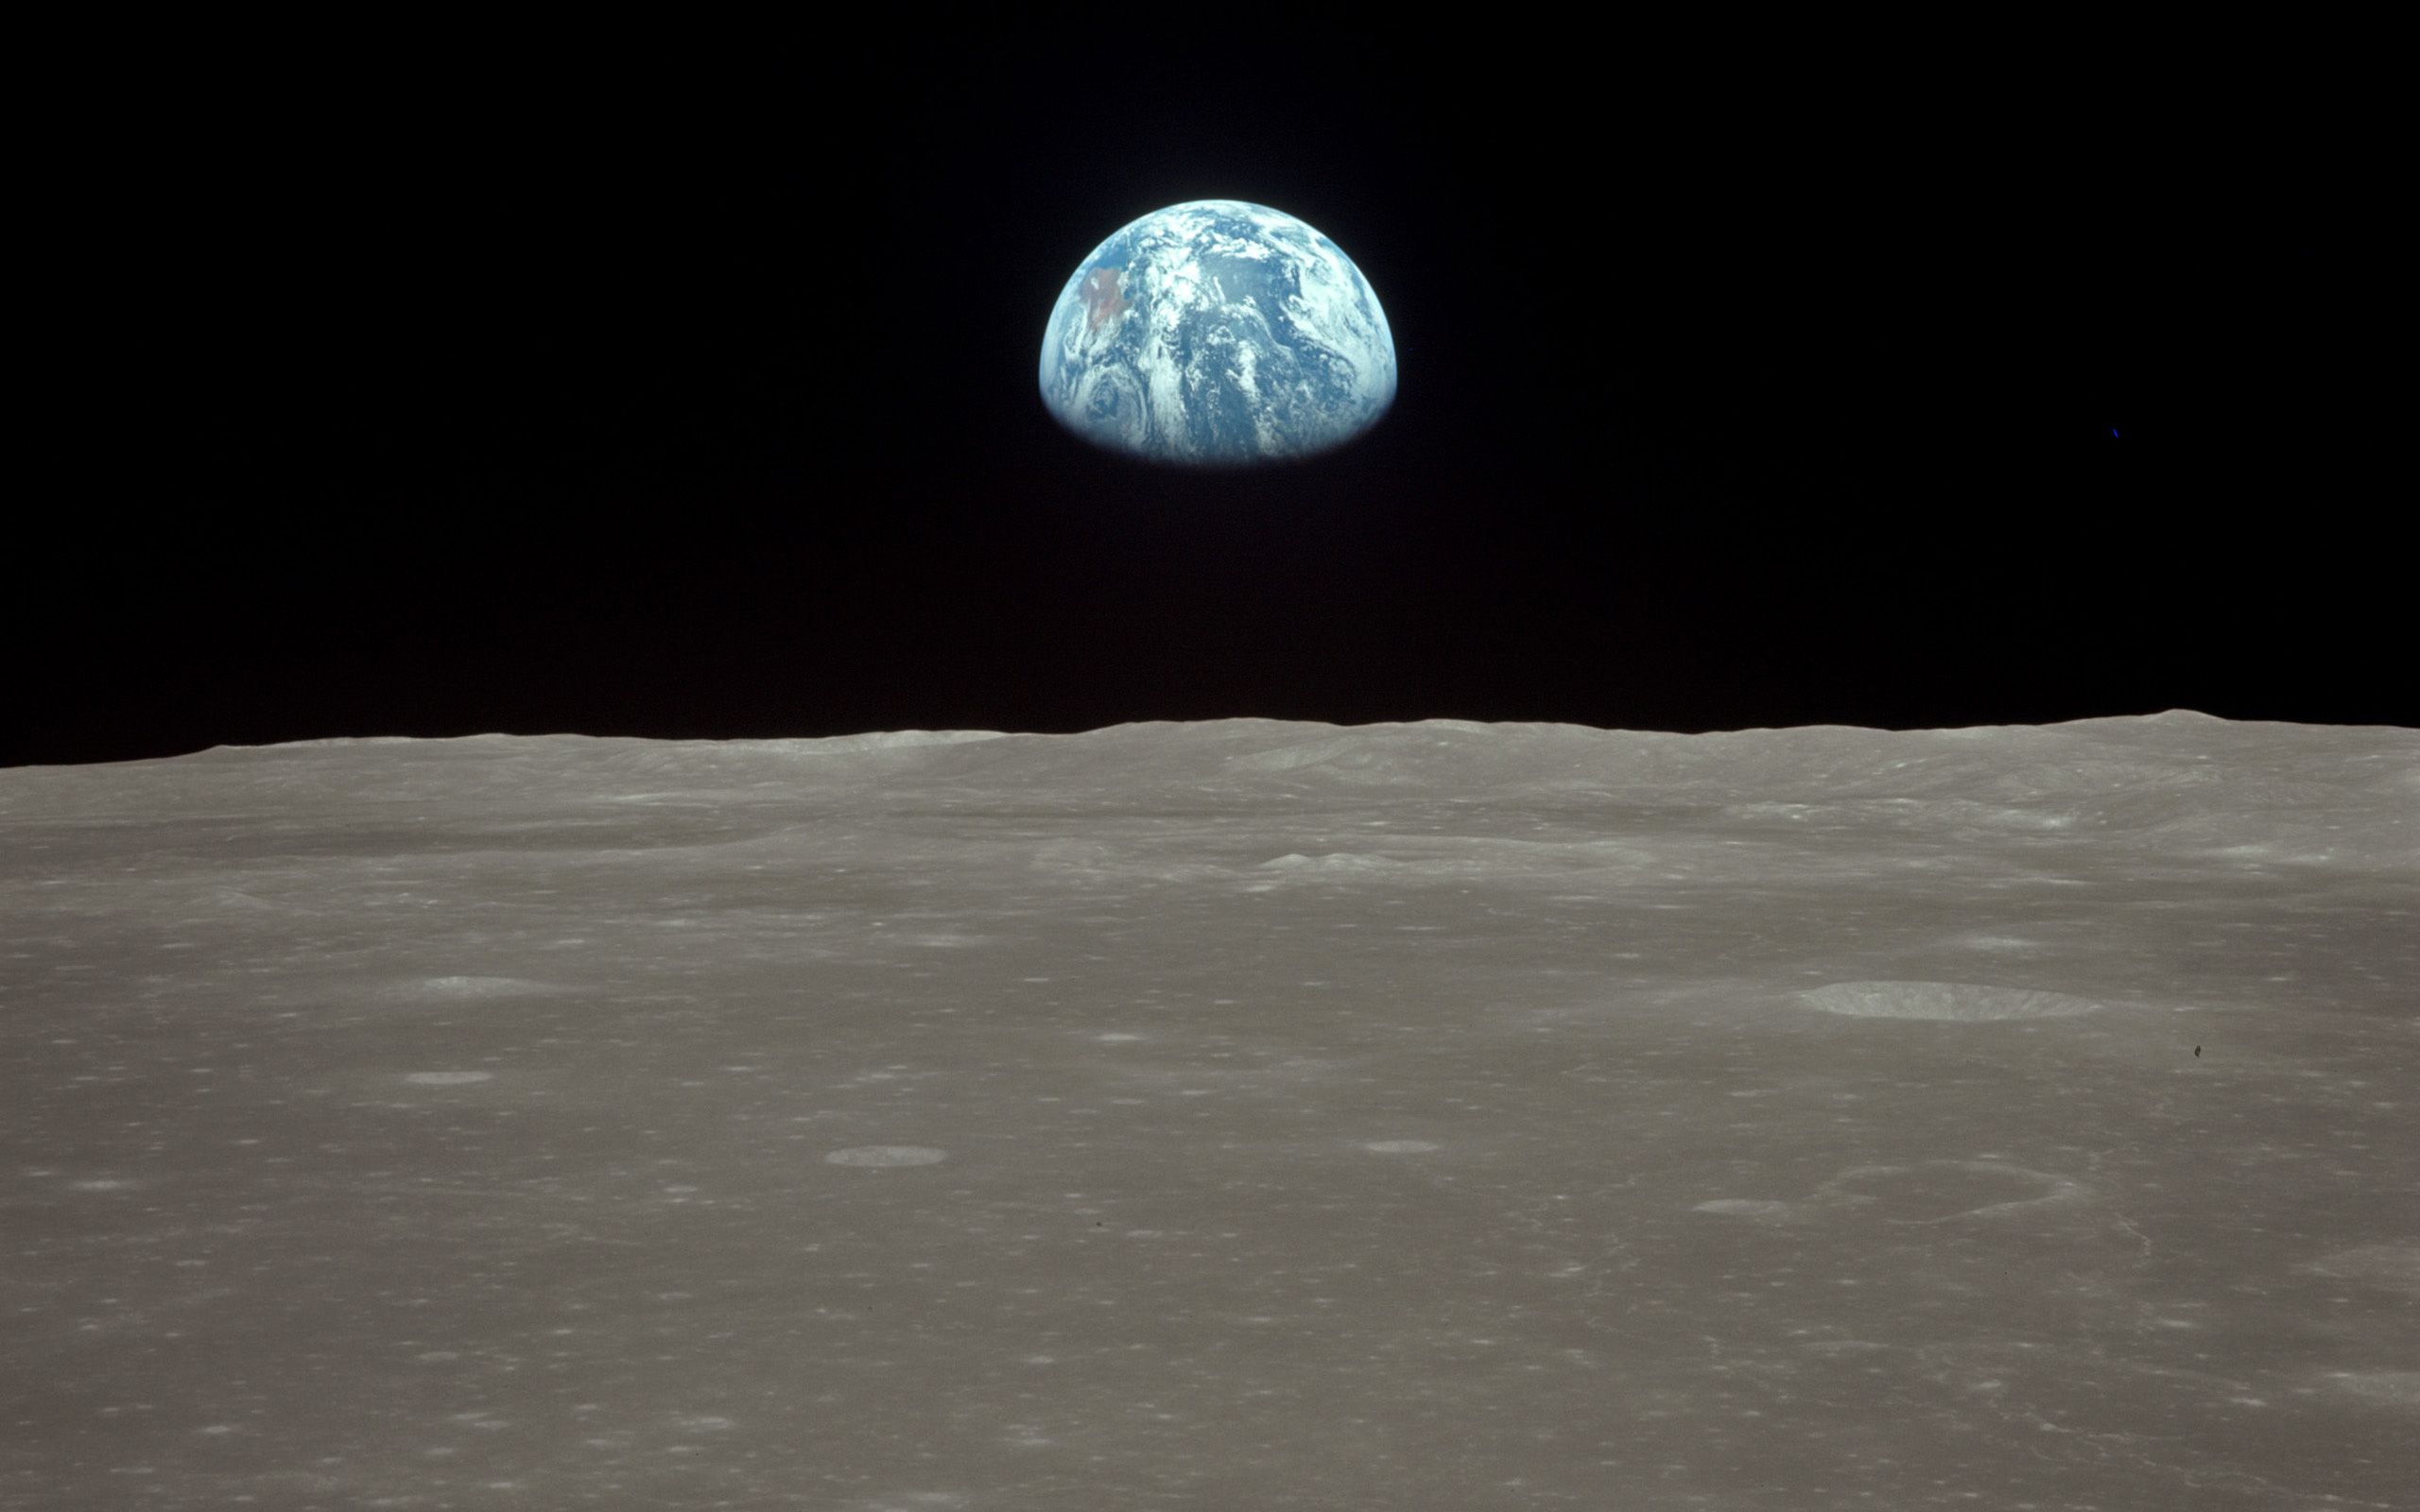 earthrise from apollo 8 – seeing our fragile planet from the